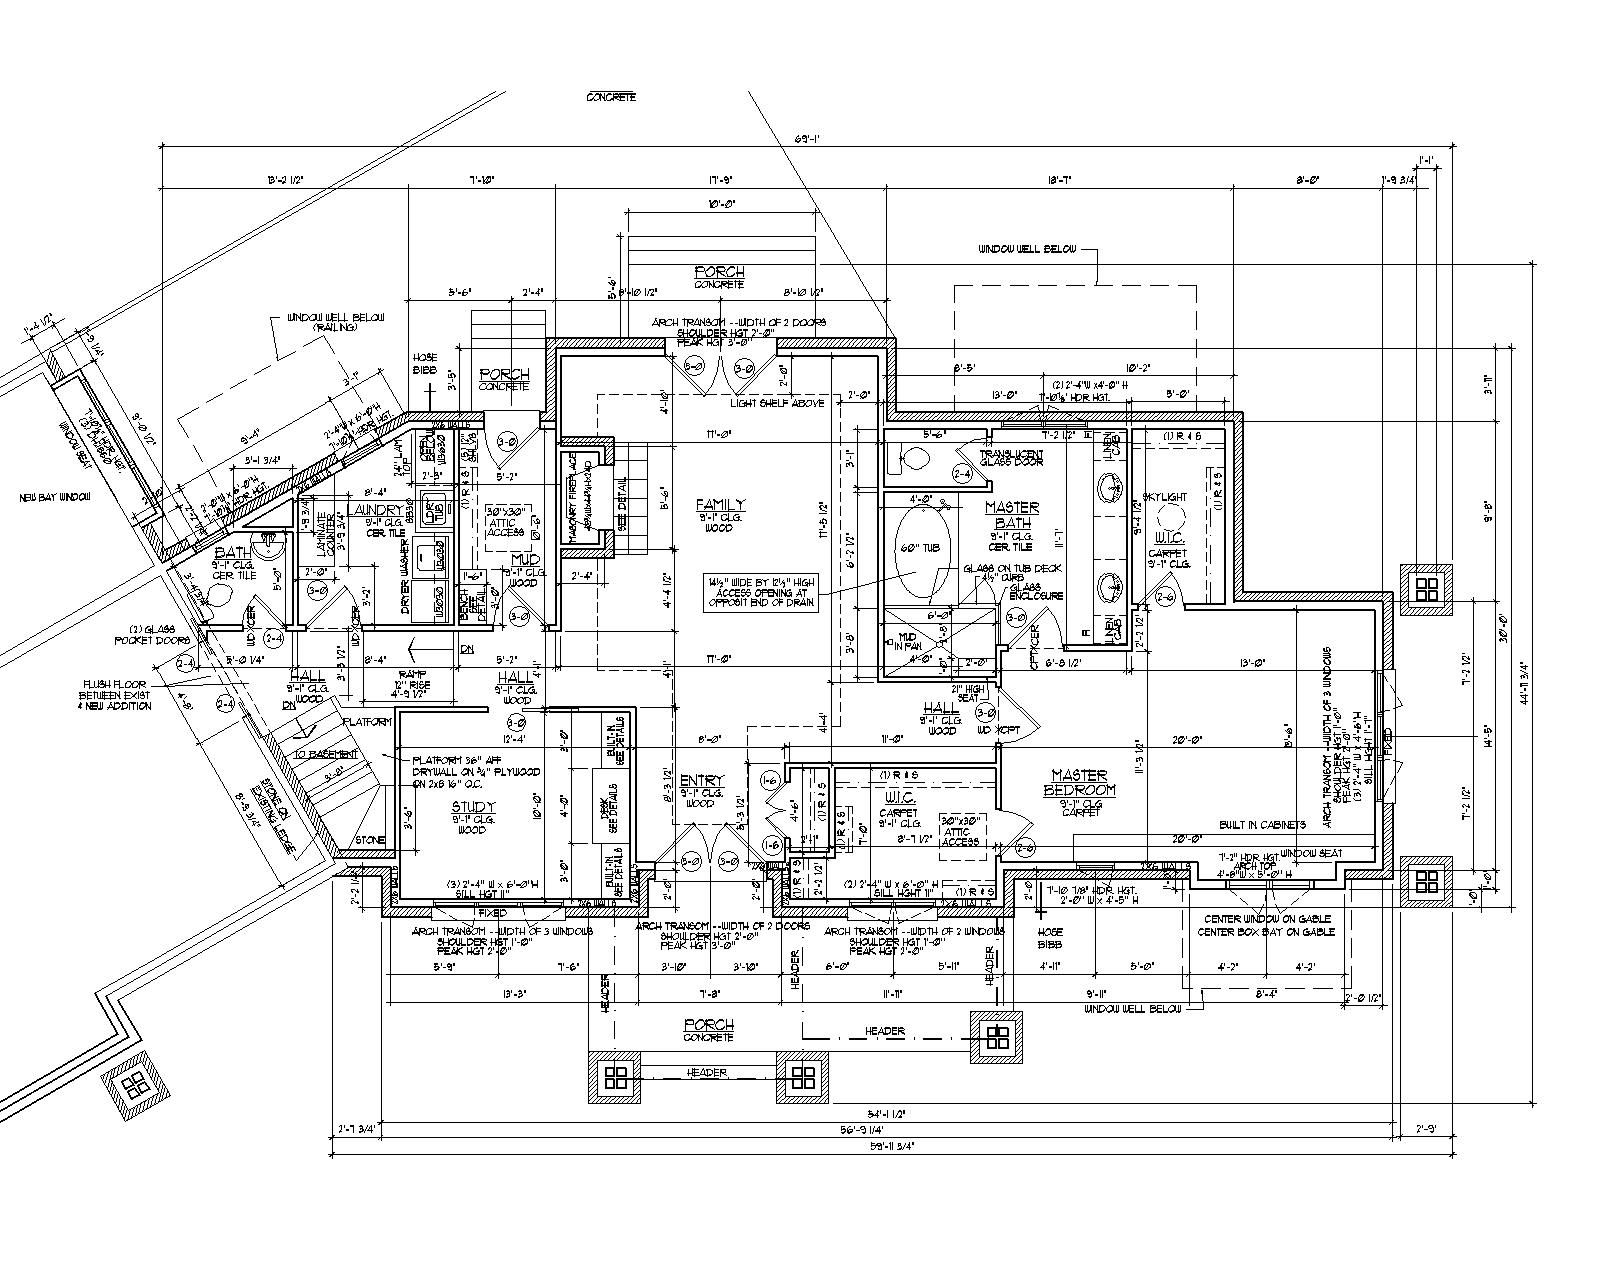 Make Architectural Drawings In Autocad